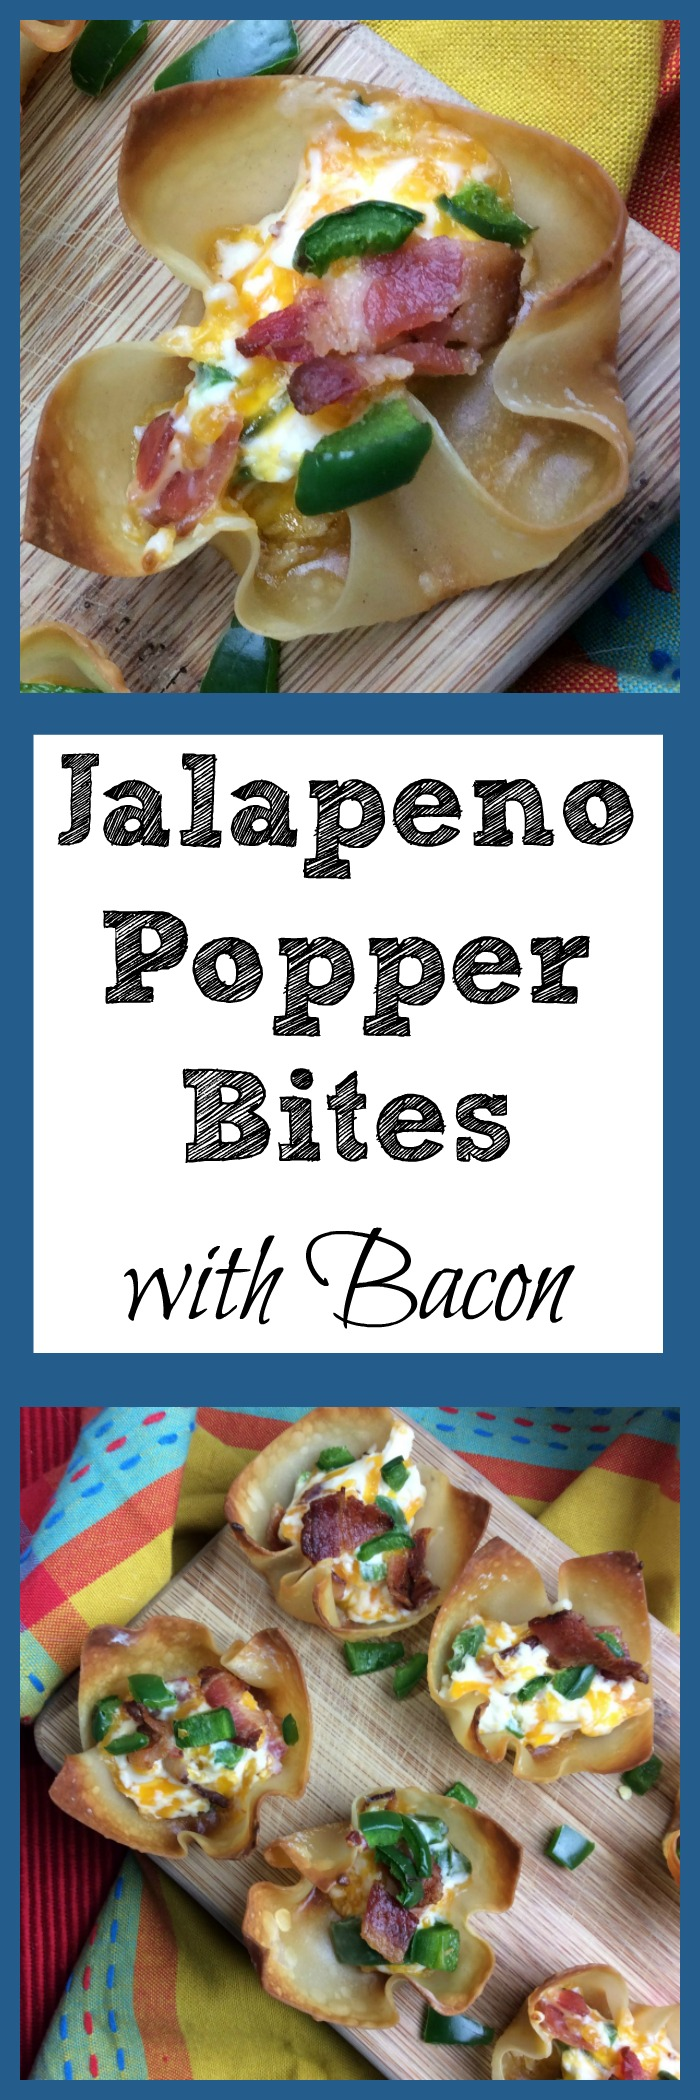 Looking for a great copy cat recipe for jalapeno popper bites? This recipe tastes delicious and is easy to make. These poppers make great game day recipe.